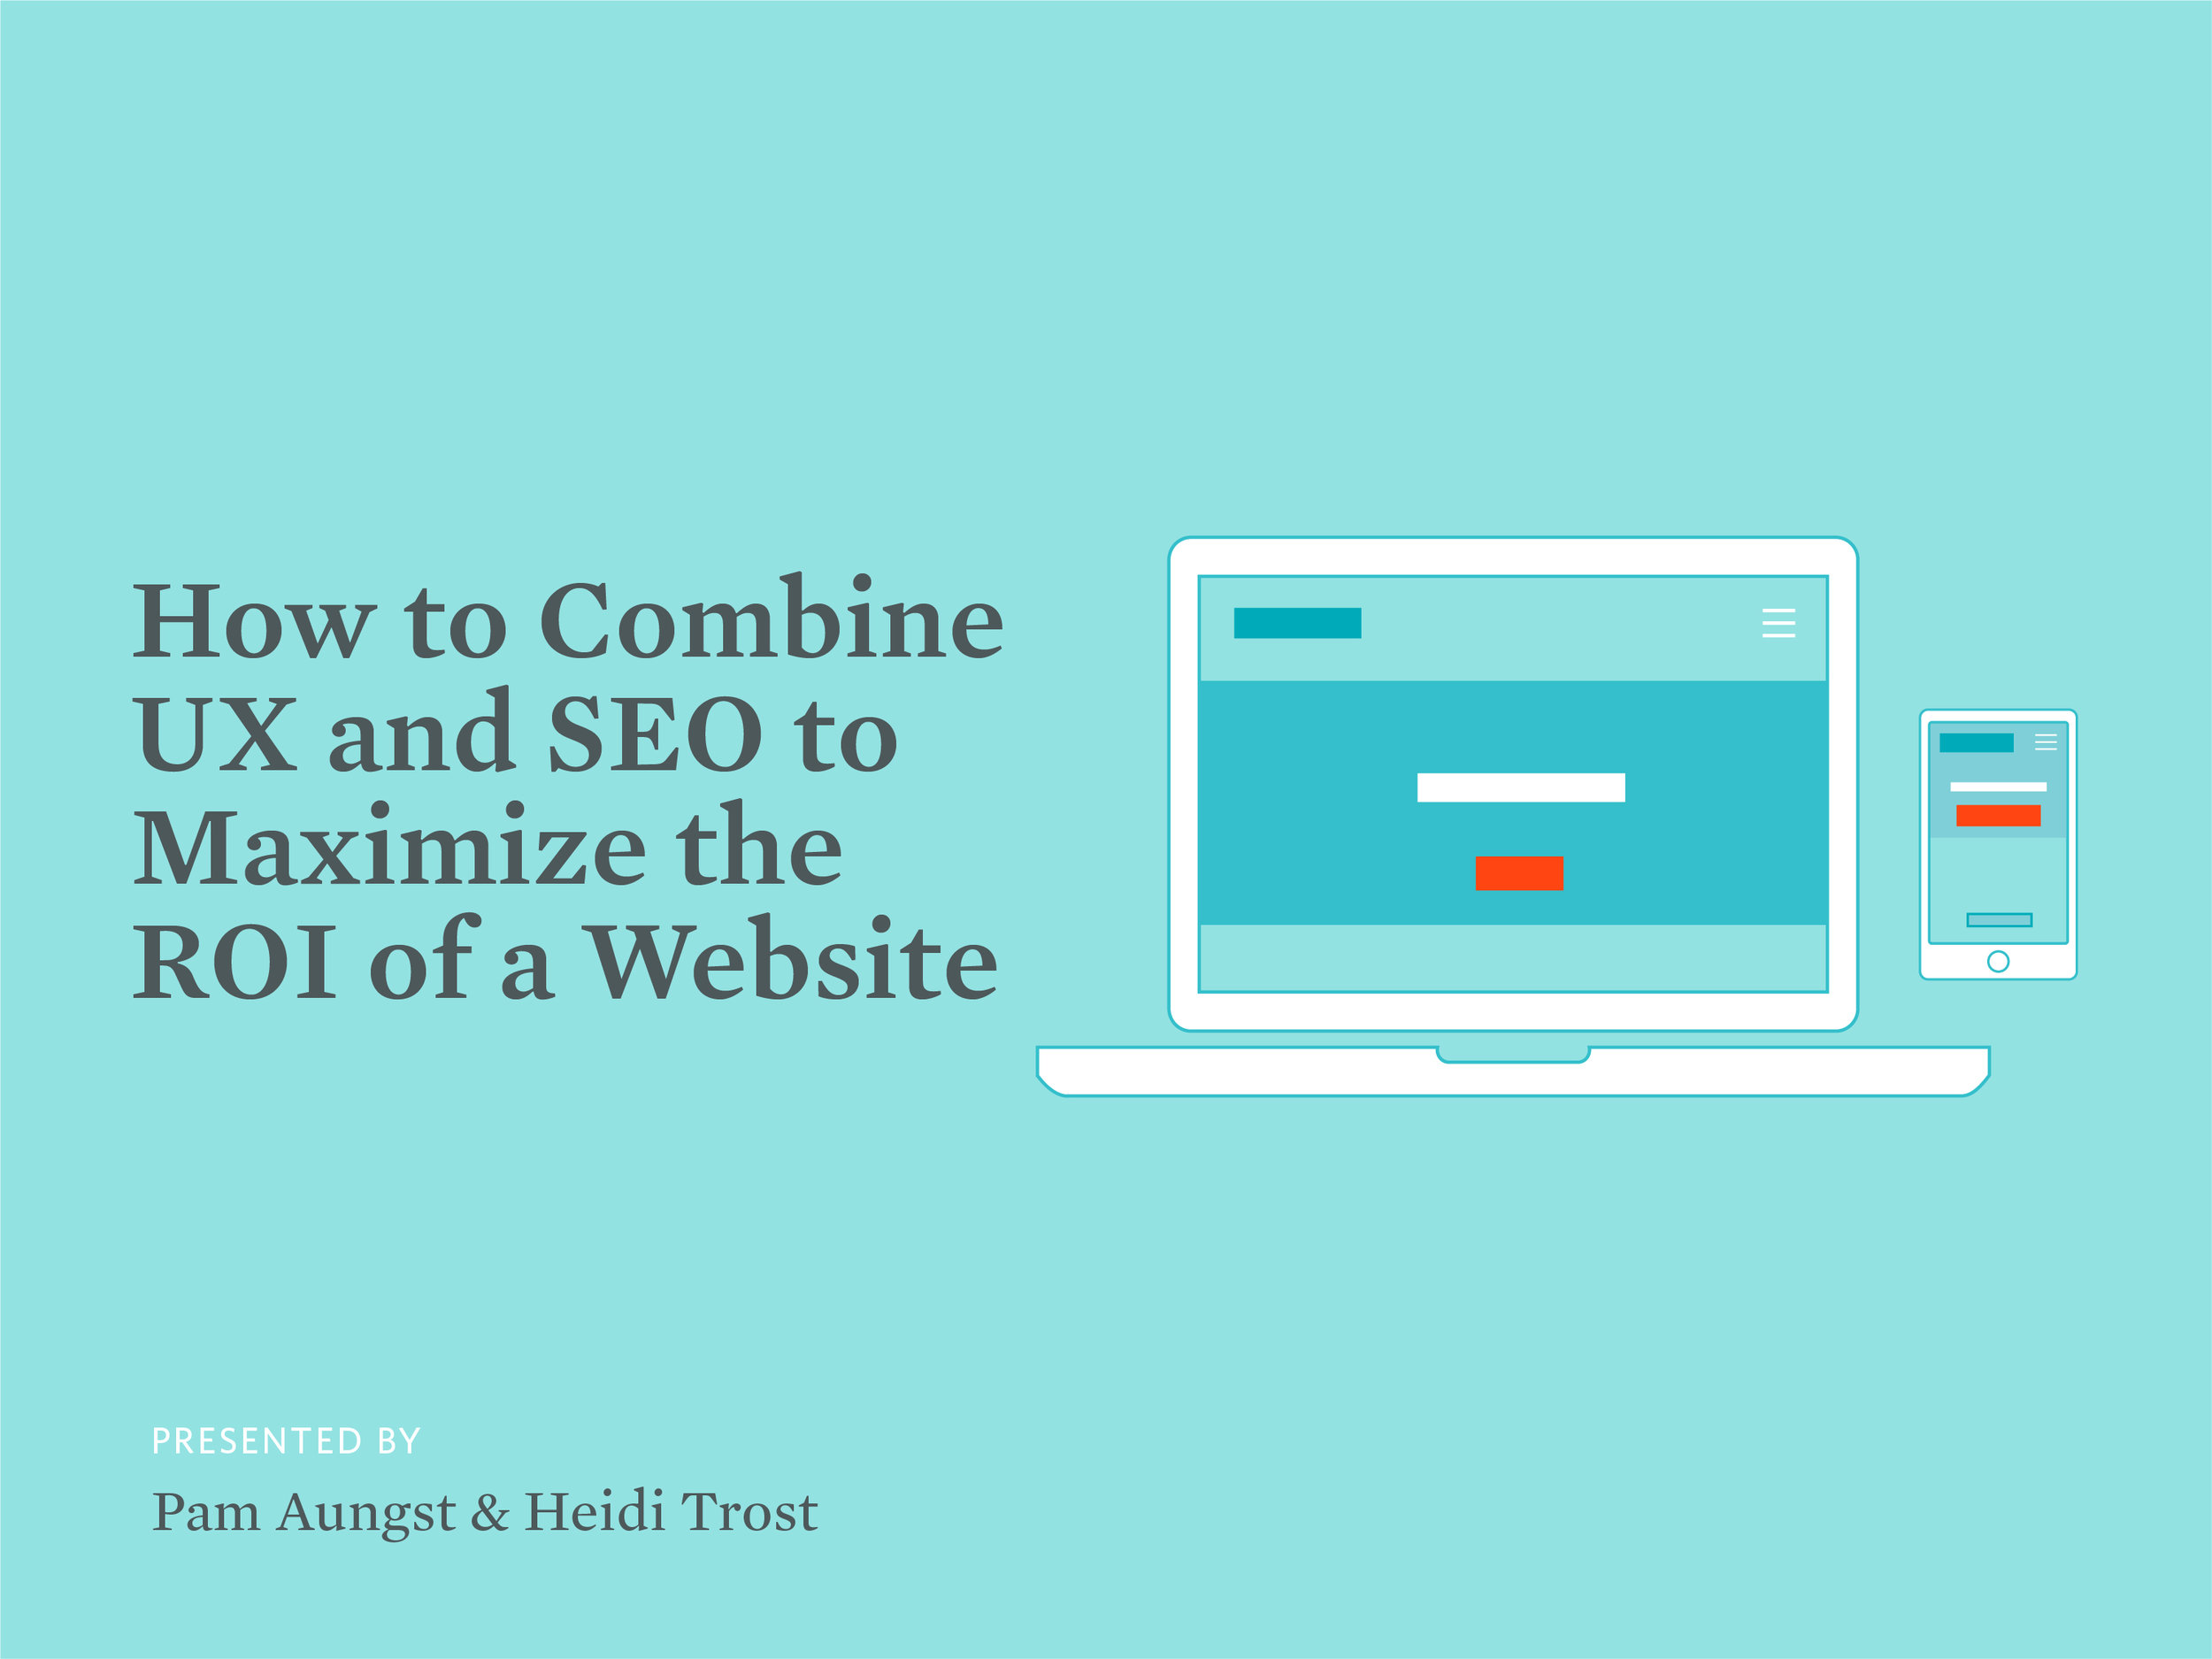 how-to-combine-ux-and-seo-to-maximize-website-roi.jpg